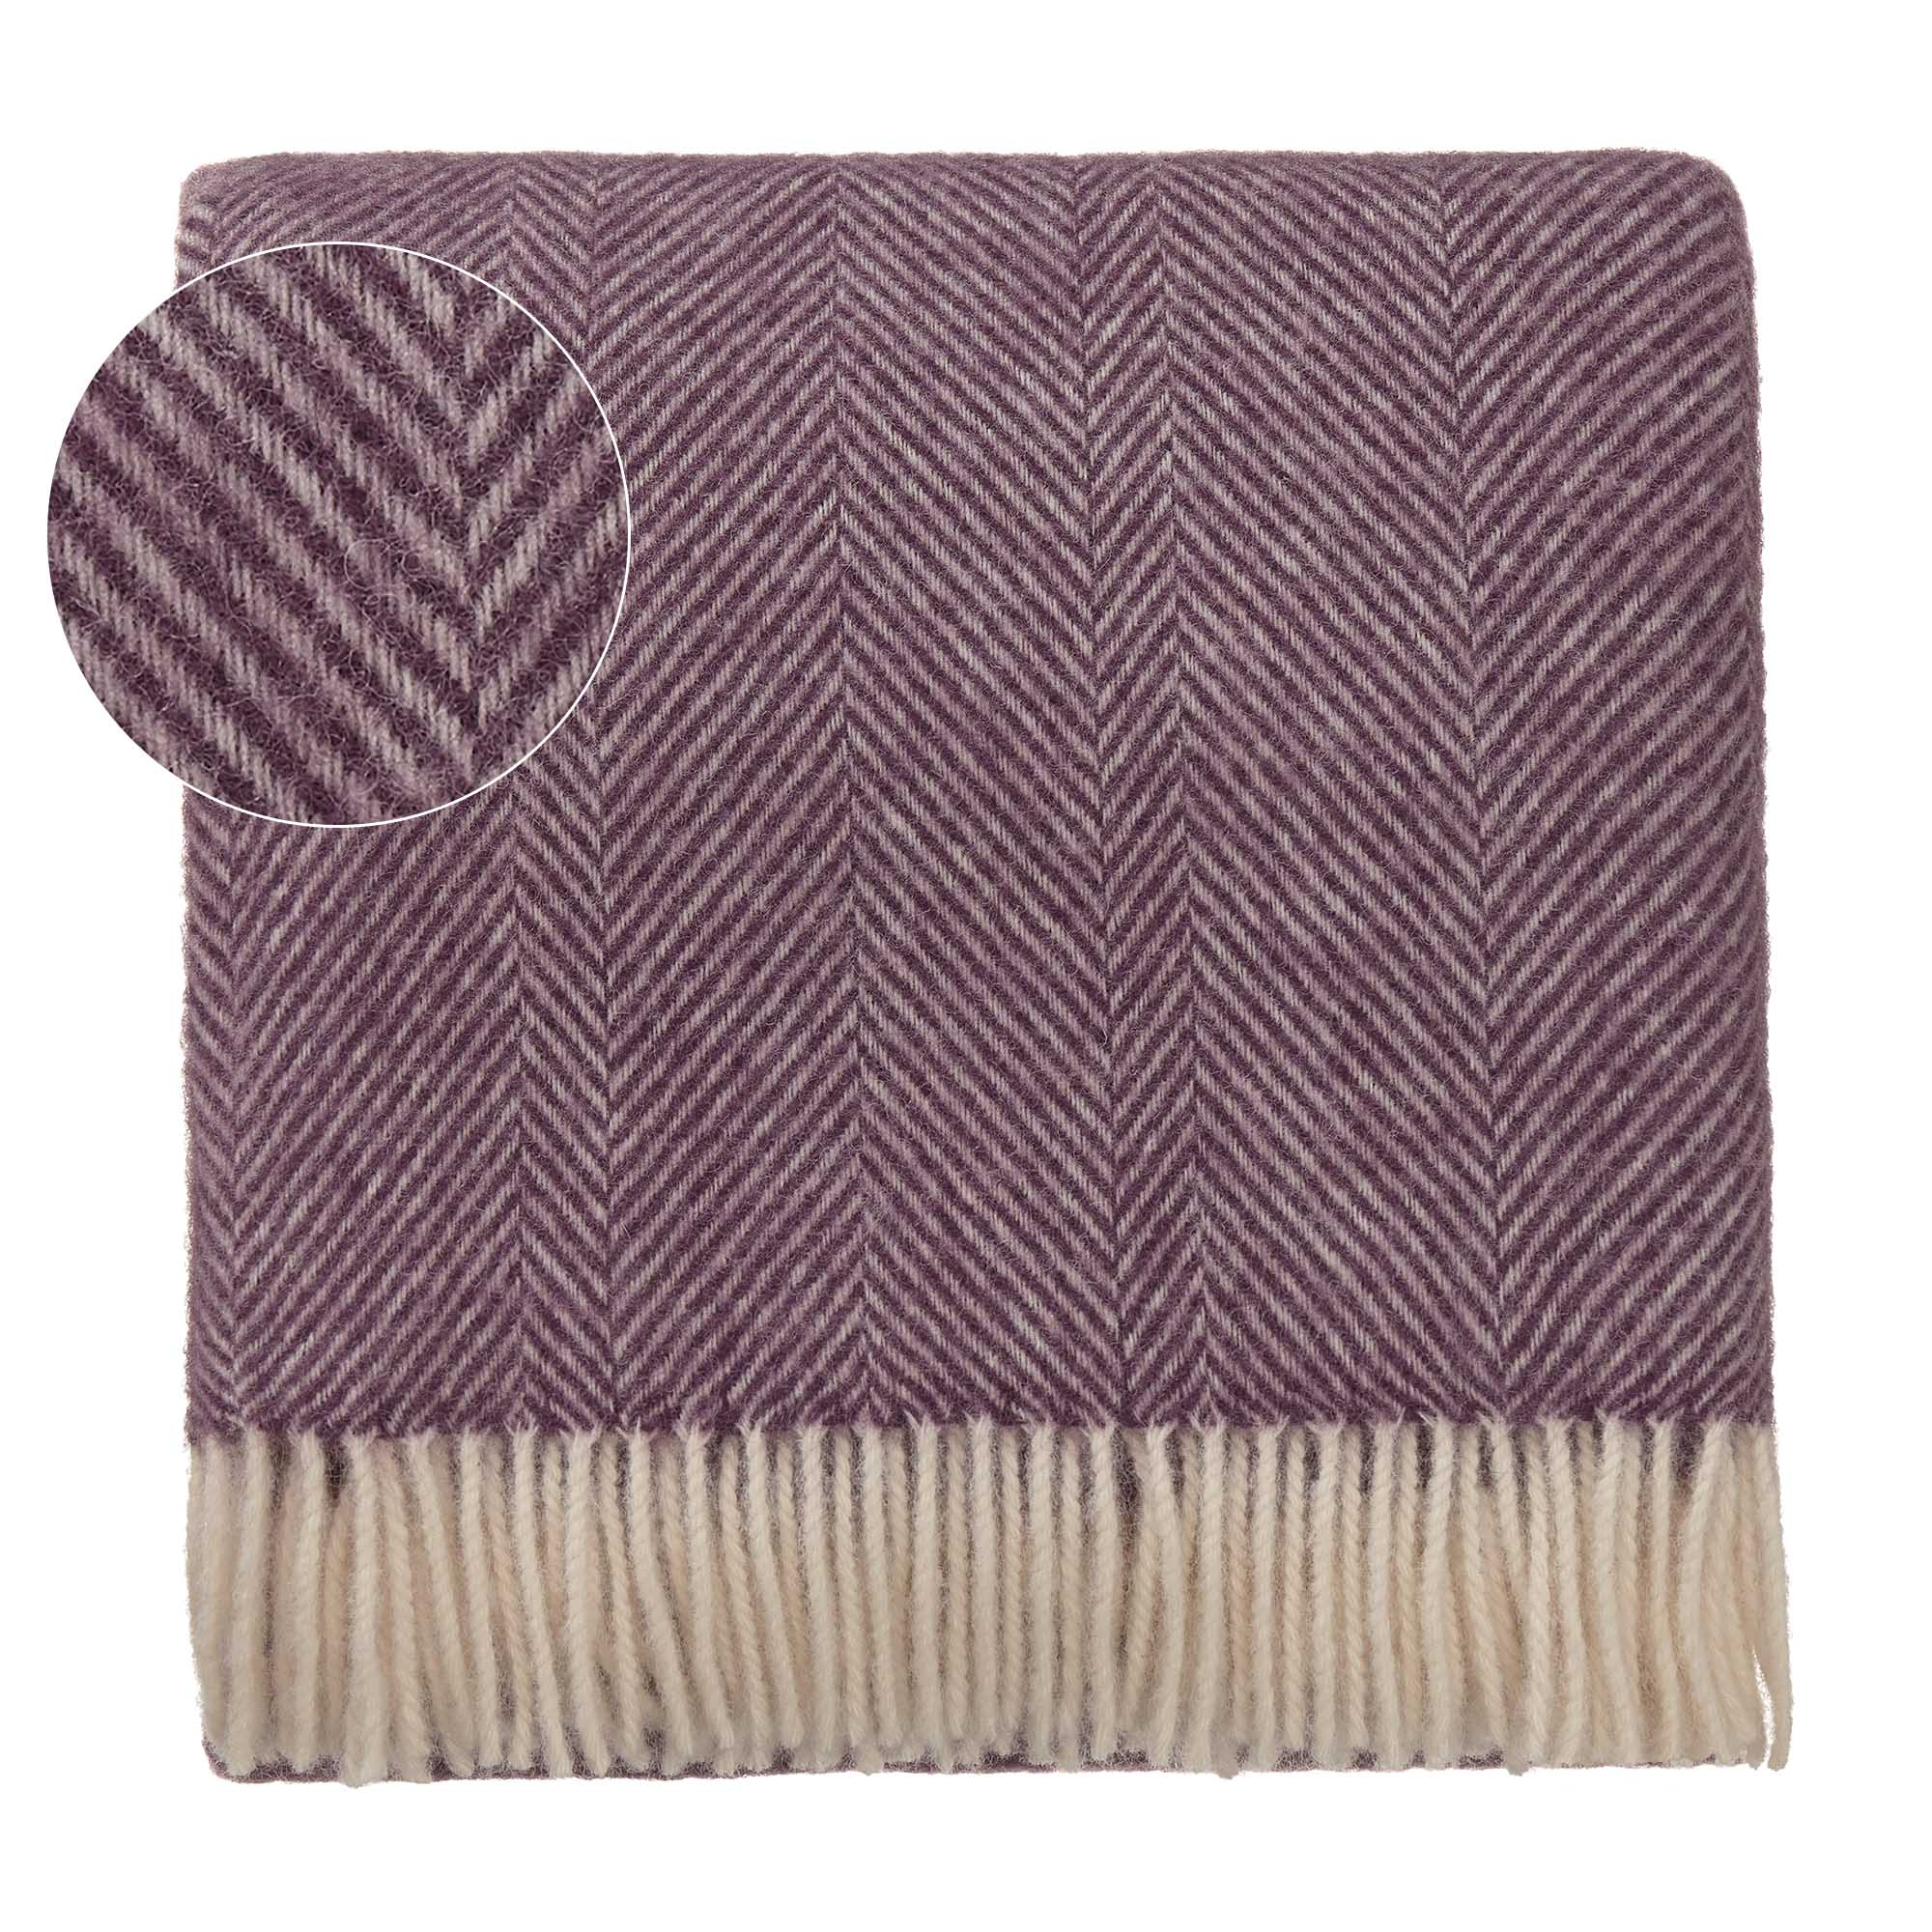 Salantai Wool Blanket [Plum/Cream]